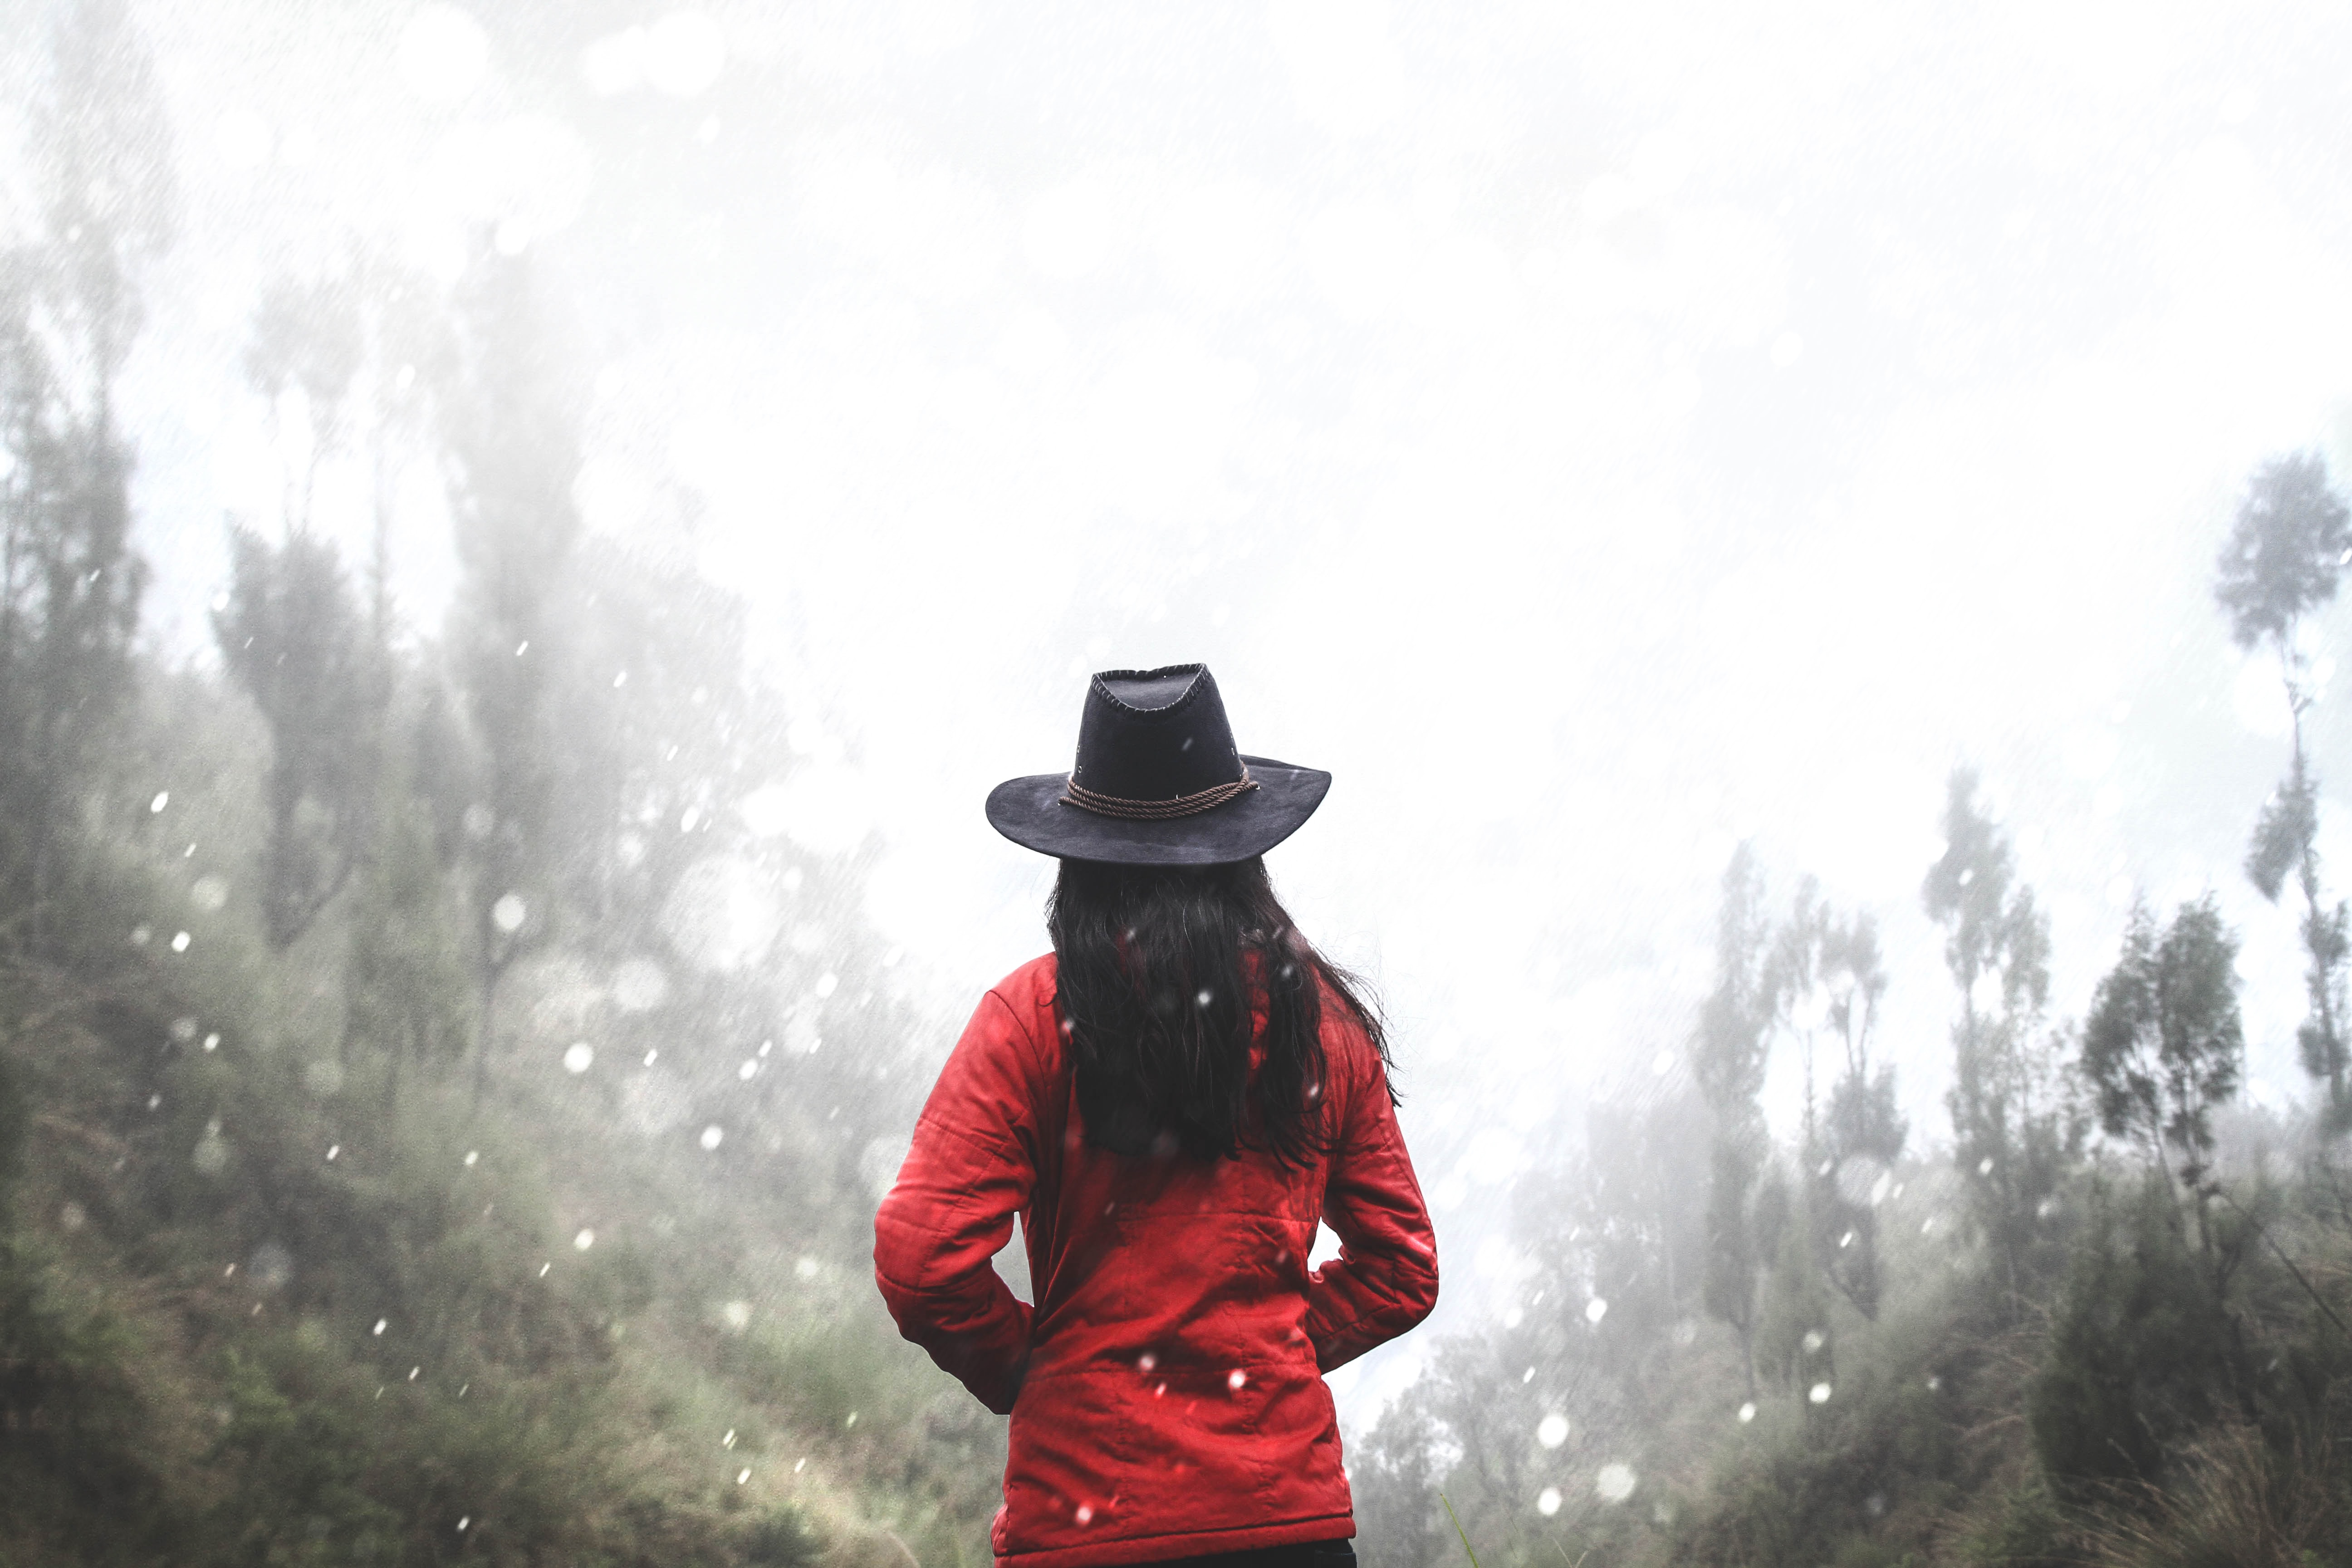 A lady with a red sweater and a black brimmed hat staring into the winter forest in Kintamani, Bali